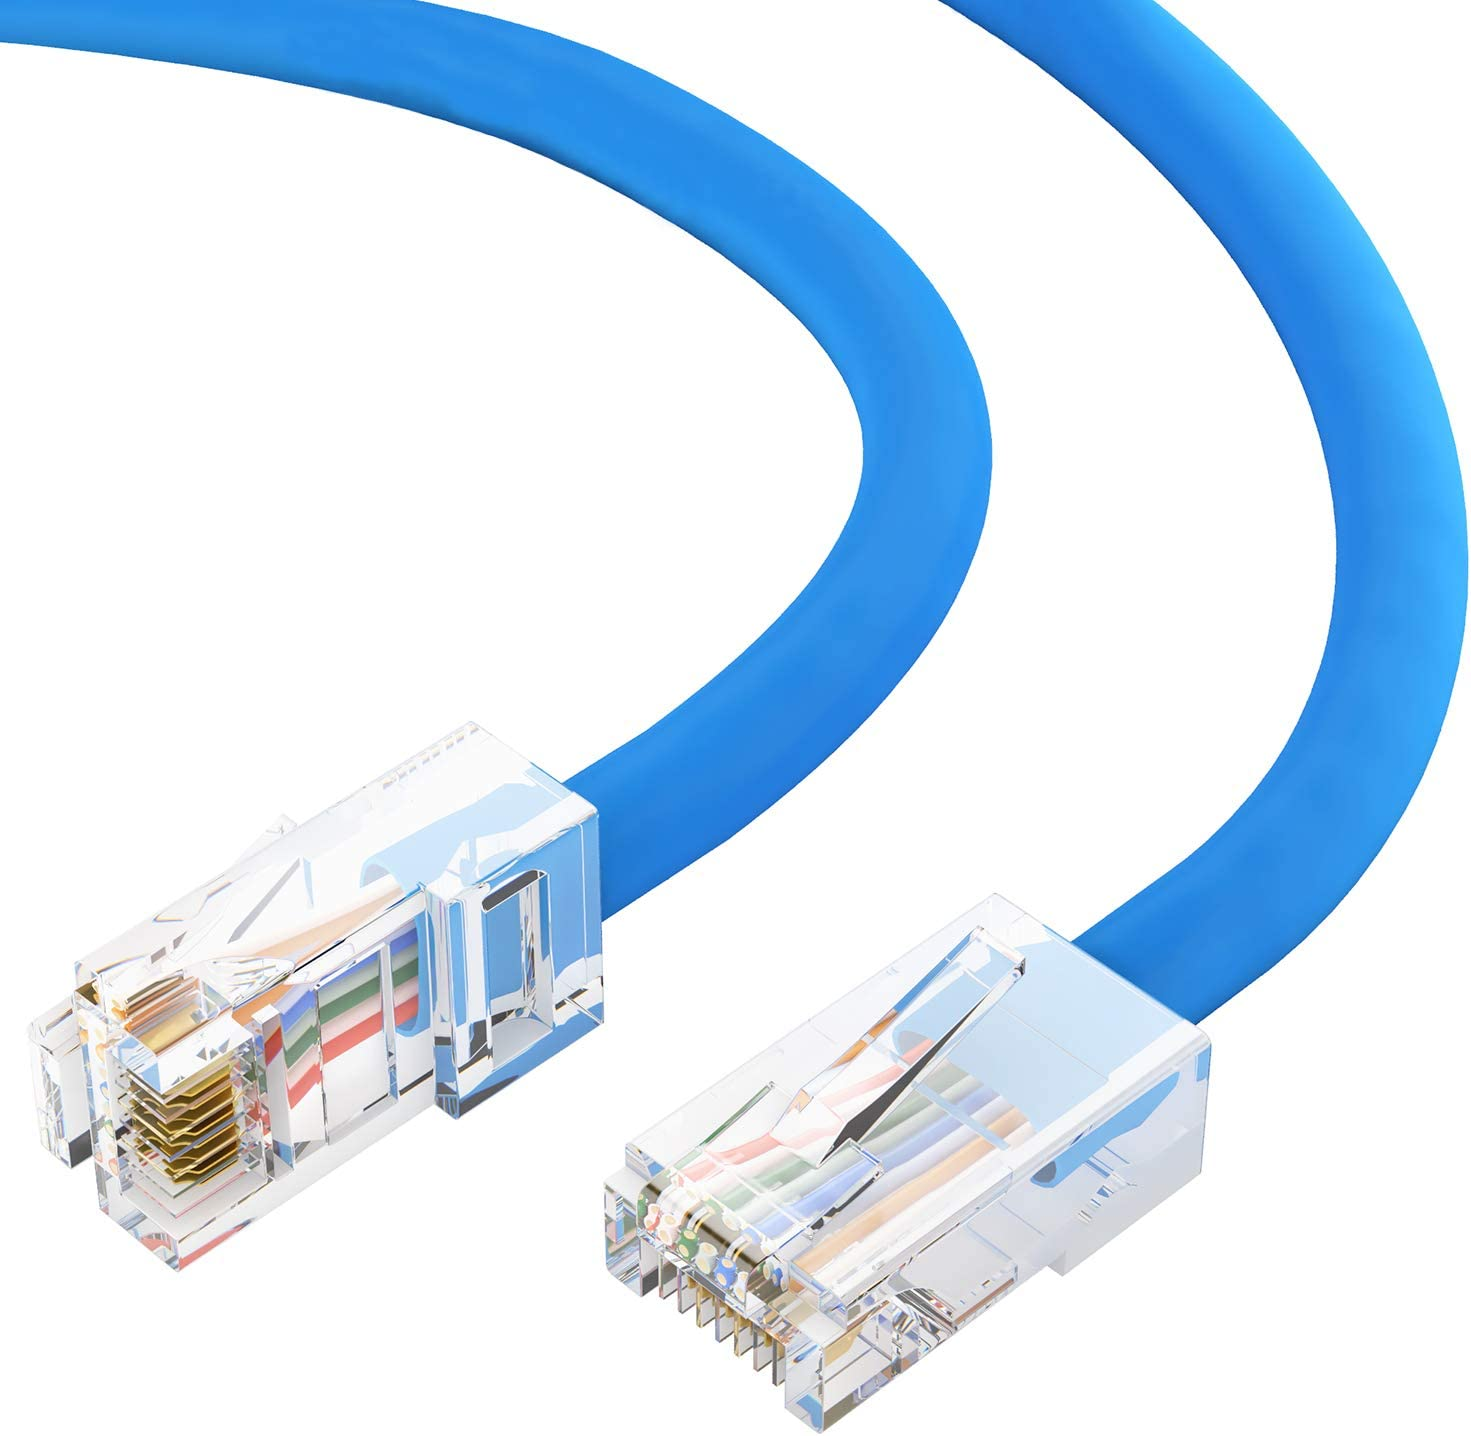 10 Gigabit//Sec High Speed LAN Internet//Patch Cable GOWOS Cat6 Ethernet Cable 50-Pack - 5 FT Black 550MHz 24AWG Network Cable with Gold Plated RJ45 Snagless//Molded//Booted Connector